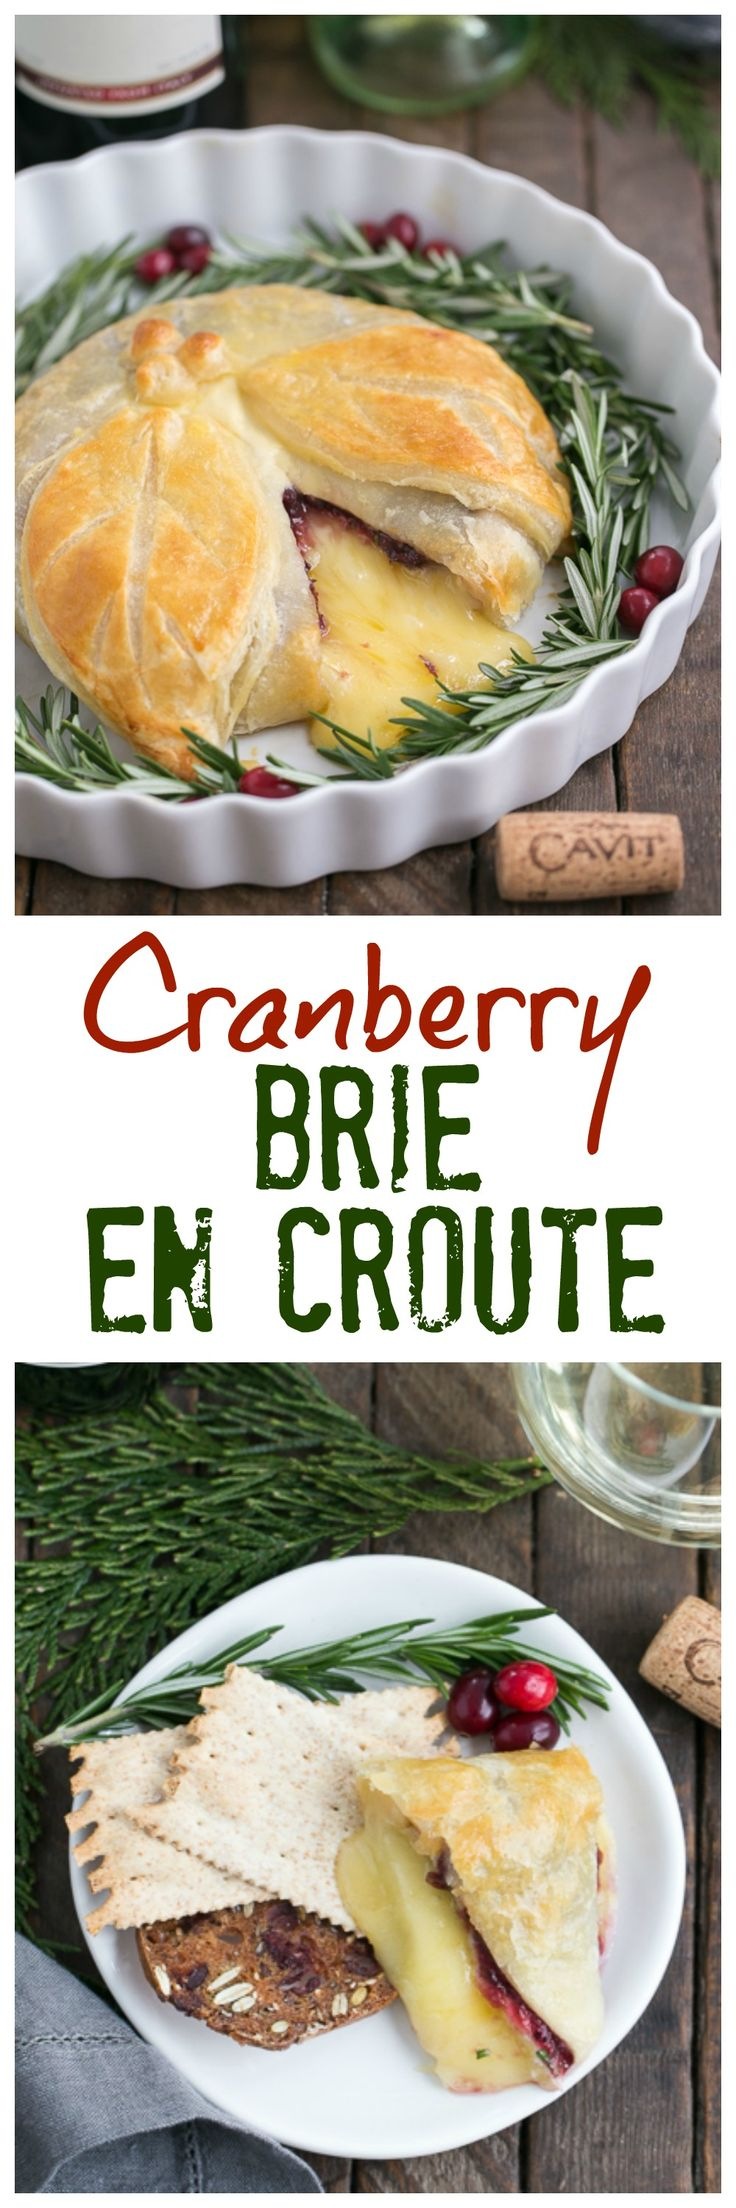 Cranberry Brie en Croute | An irresistible, seasonal Brie topped with cranberry sauce, a touch of rosemary and wrapped in puff pastry! @That Skinny Chick Can Bake!!! #CavitWines #LivetheCavitLife @Cavit Wine